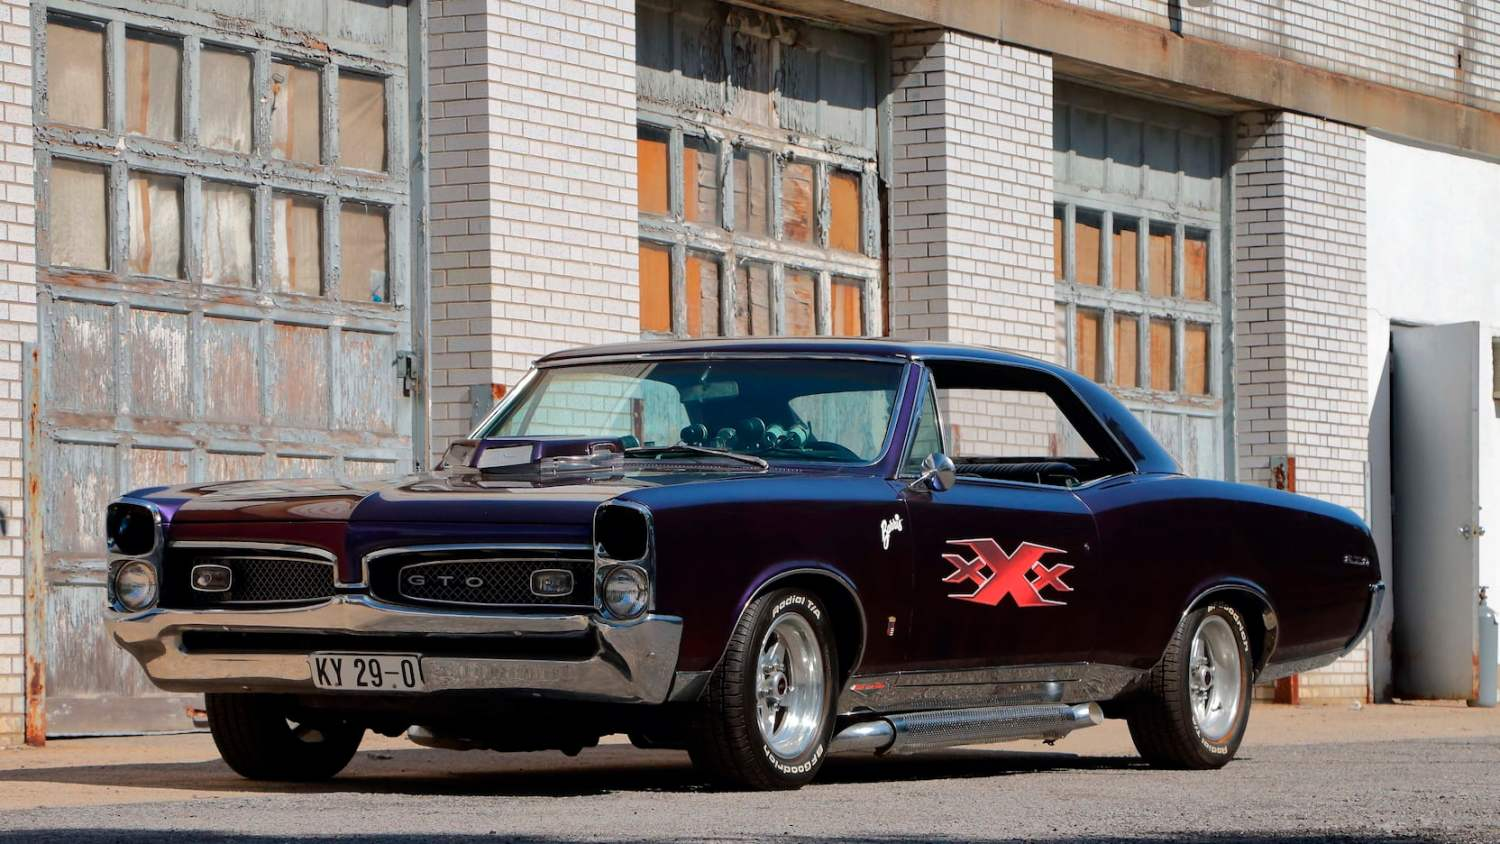 1967 Pontiac GTO XXX Promotional Car